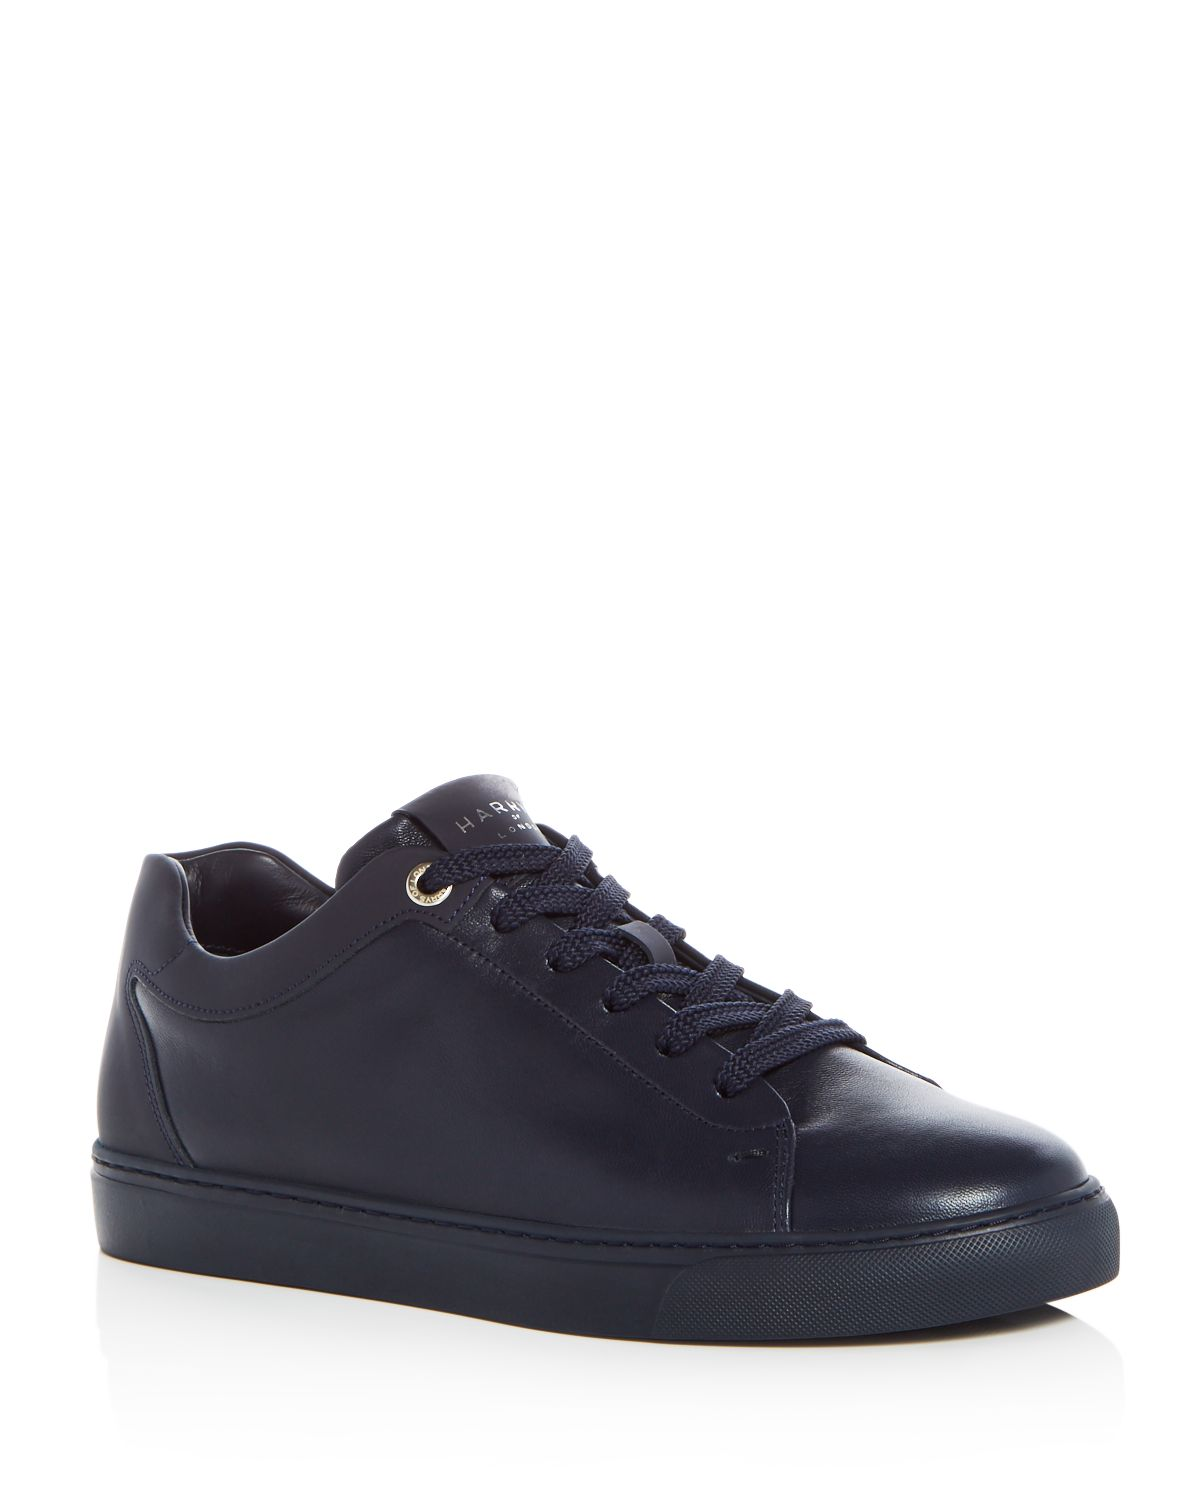 HARRYS OF LONDONMen's Tom Leather Lace Up Sneakers